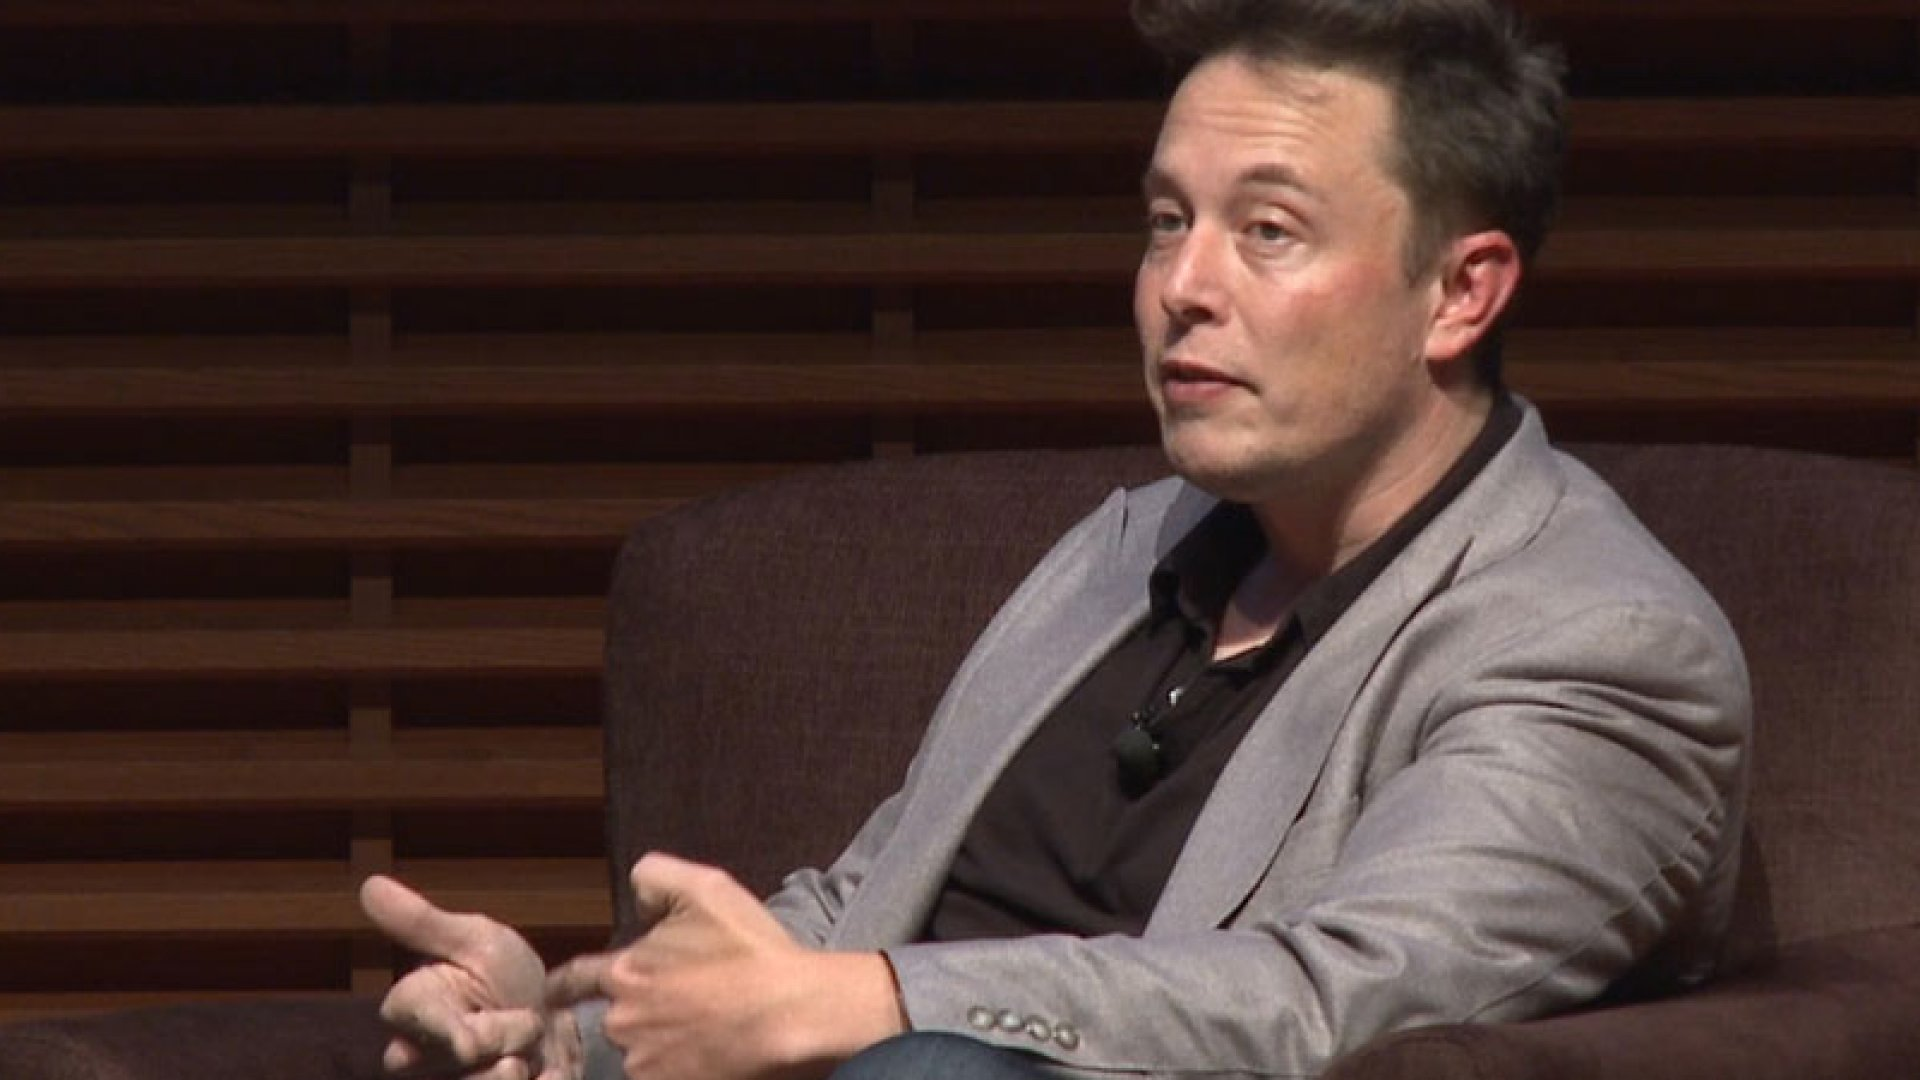 No Tesla for You! Elon Musk Punishes Whiny Customer by Canceling Order